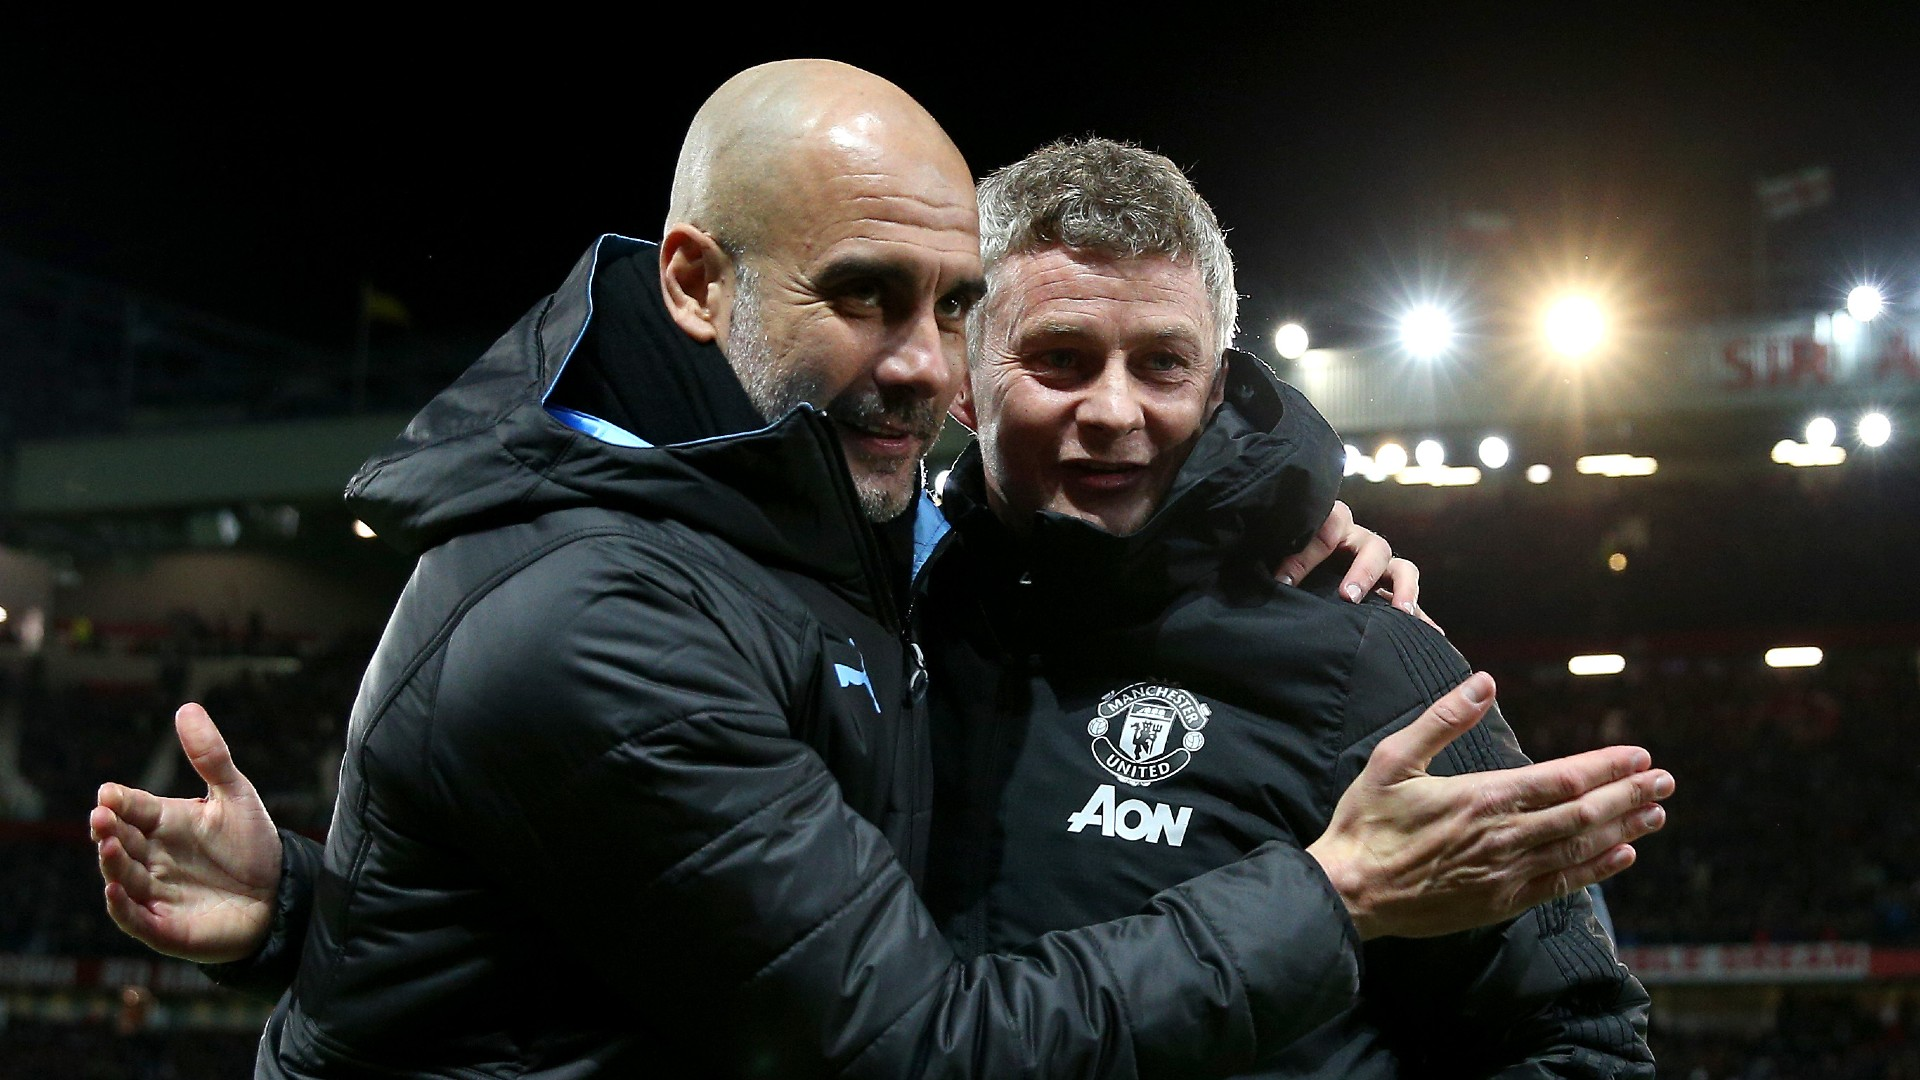 Guardiola honoured that City are top dogs in Manchester